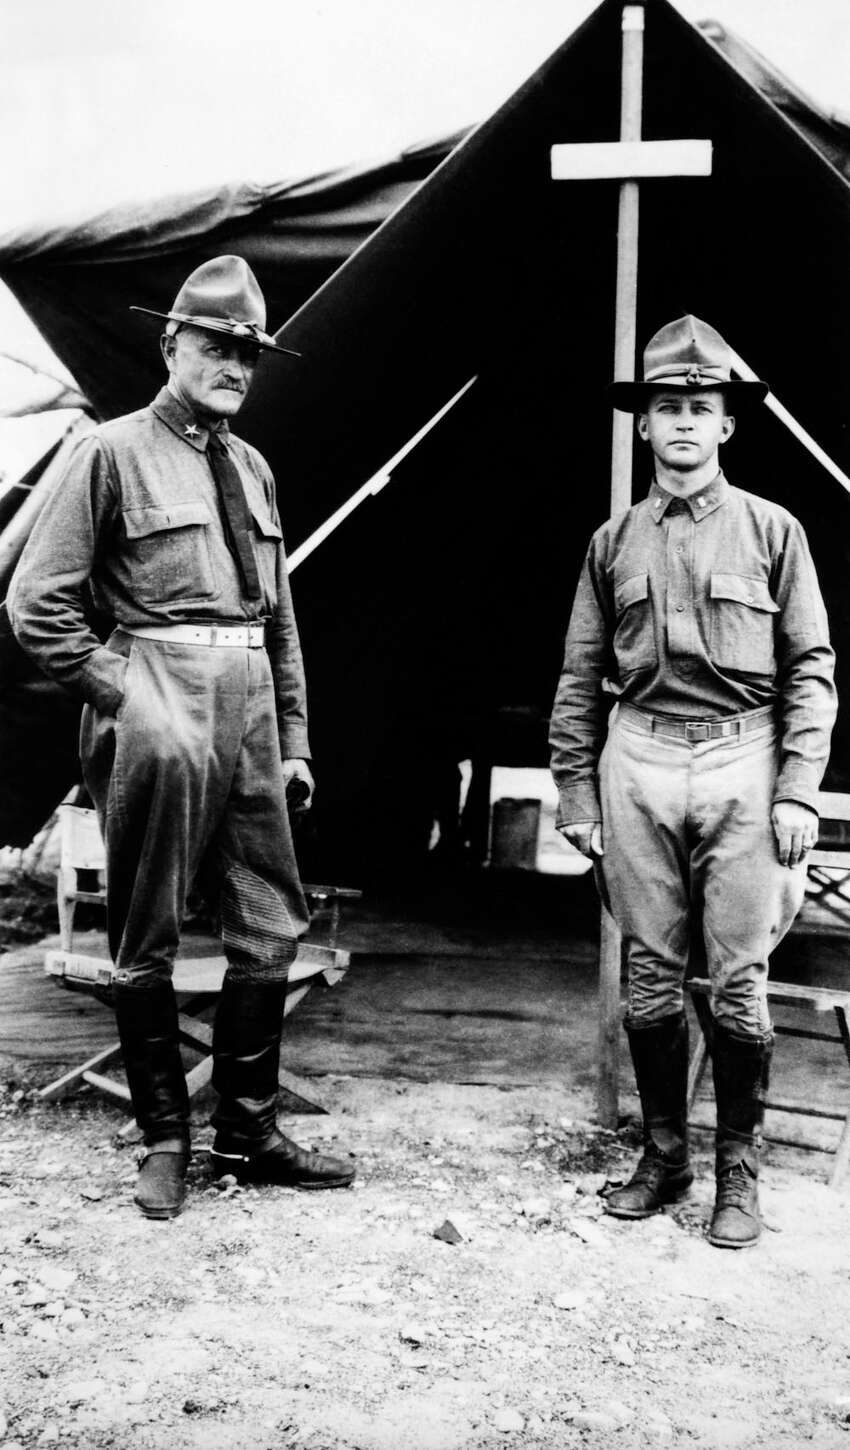 2. By 1891, Pershing was one of the best shooters in the Army, ranking second in pistol shooting and fifth in rifle shooting.PHOTO: Gen. John Pershing (left) and his aide at the headquarters of the Mexican Punitive Expedition whose goal was the capture of Pancho Villa, at Colonia Dublan, Mexico, circa 1916.